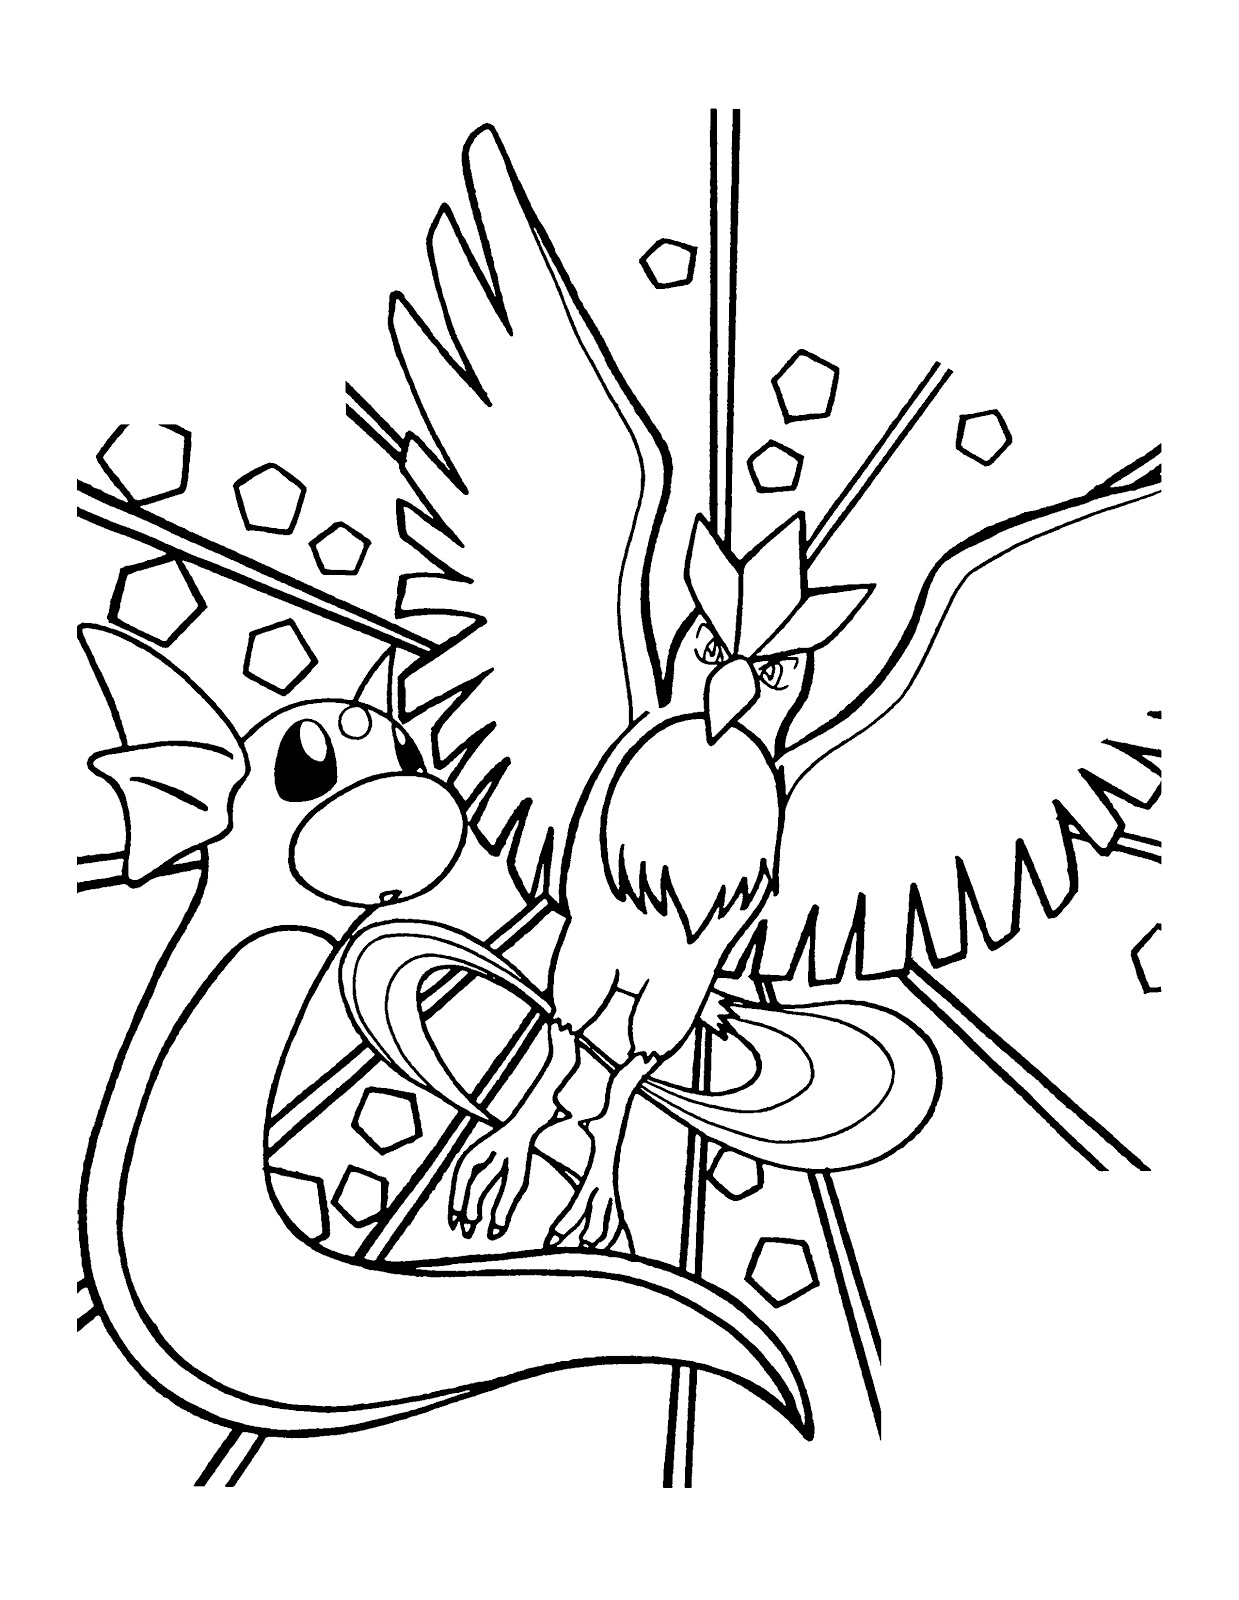 Pokemon Articuno Coloring Pages Printable Free Pokemon Coloring